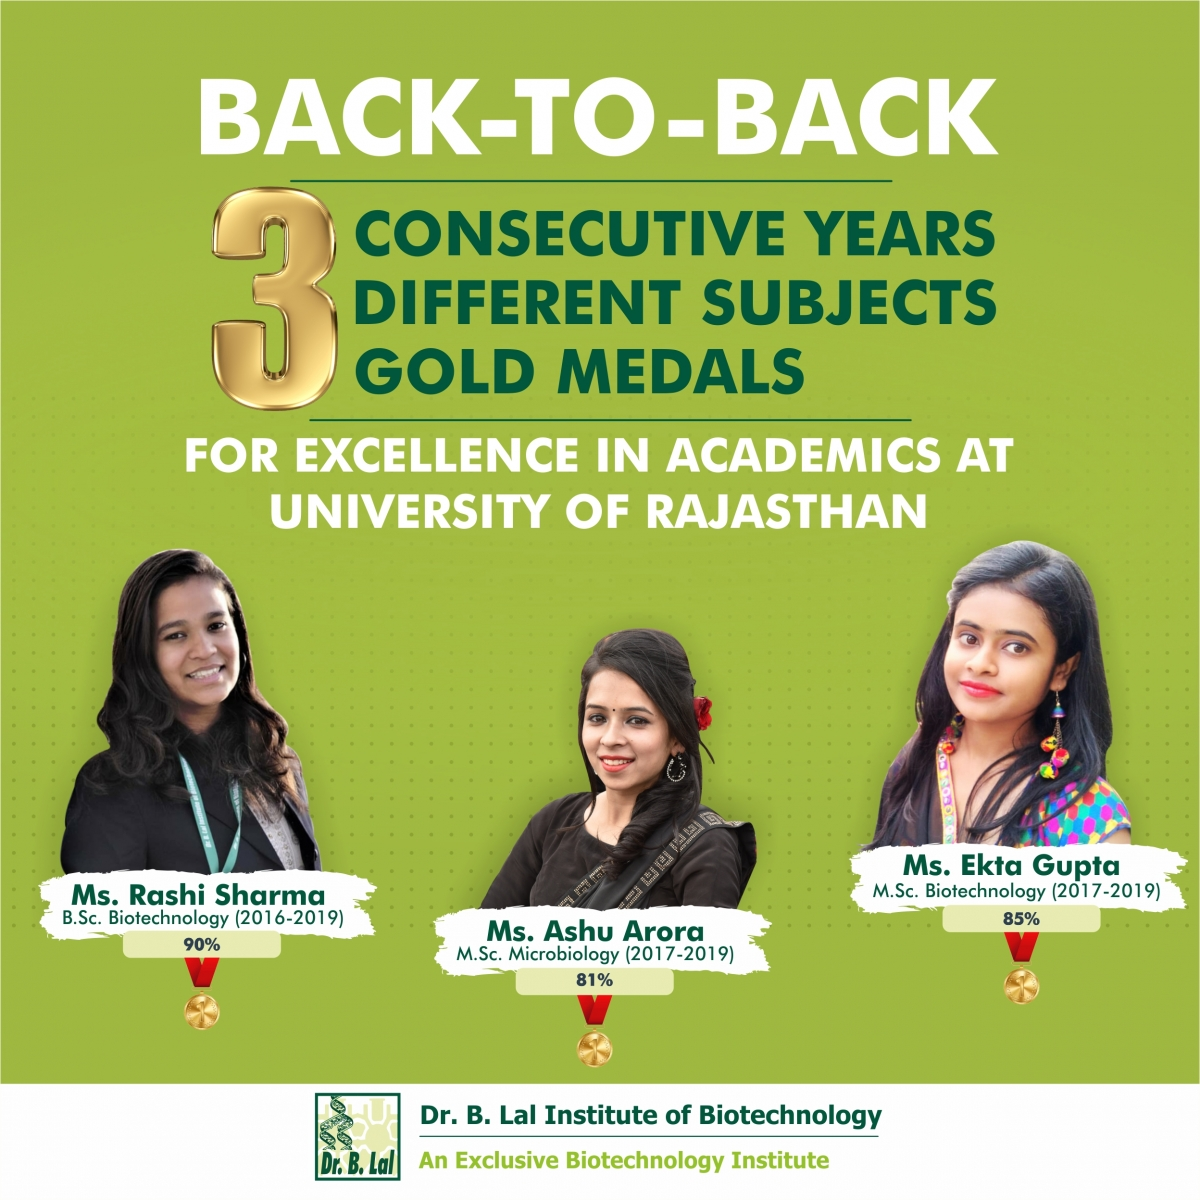 BACK-TO-BACK 3 Gold Medals by Dr. B. Lal Institute of Biotechnology at Rajasthan University